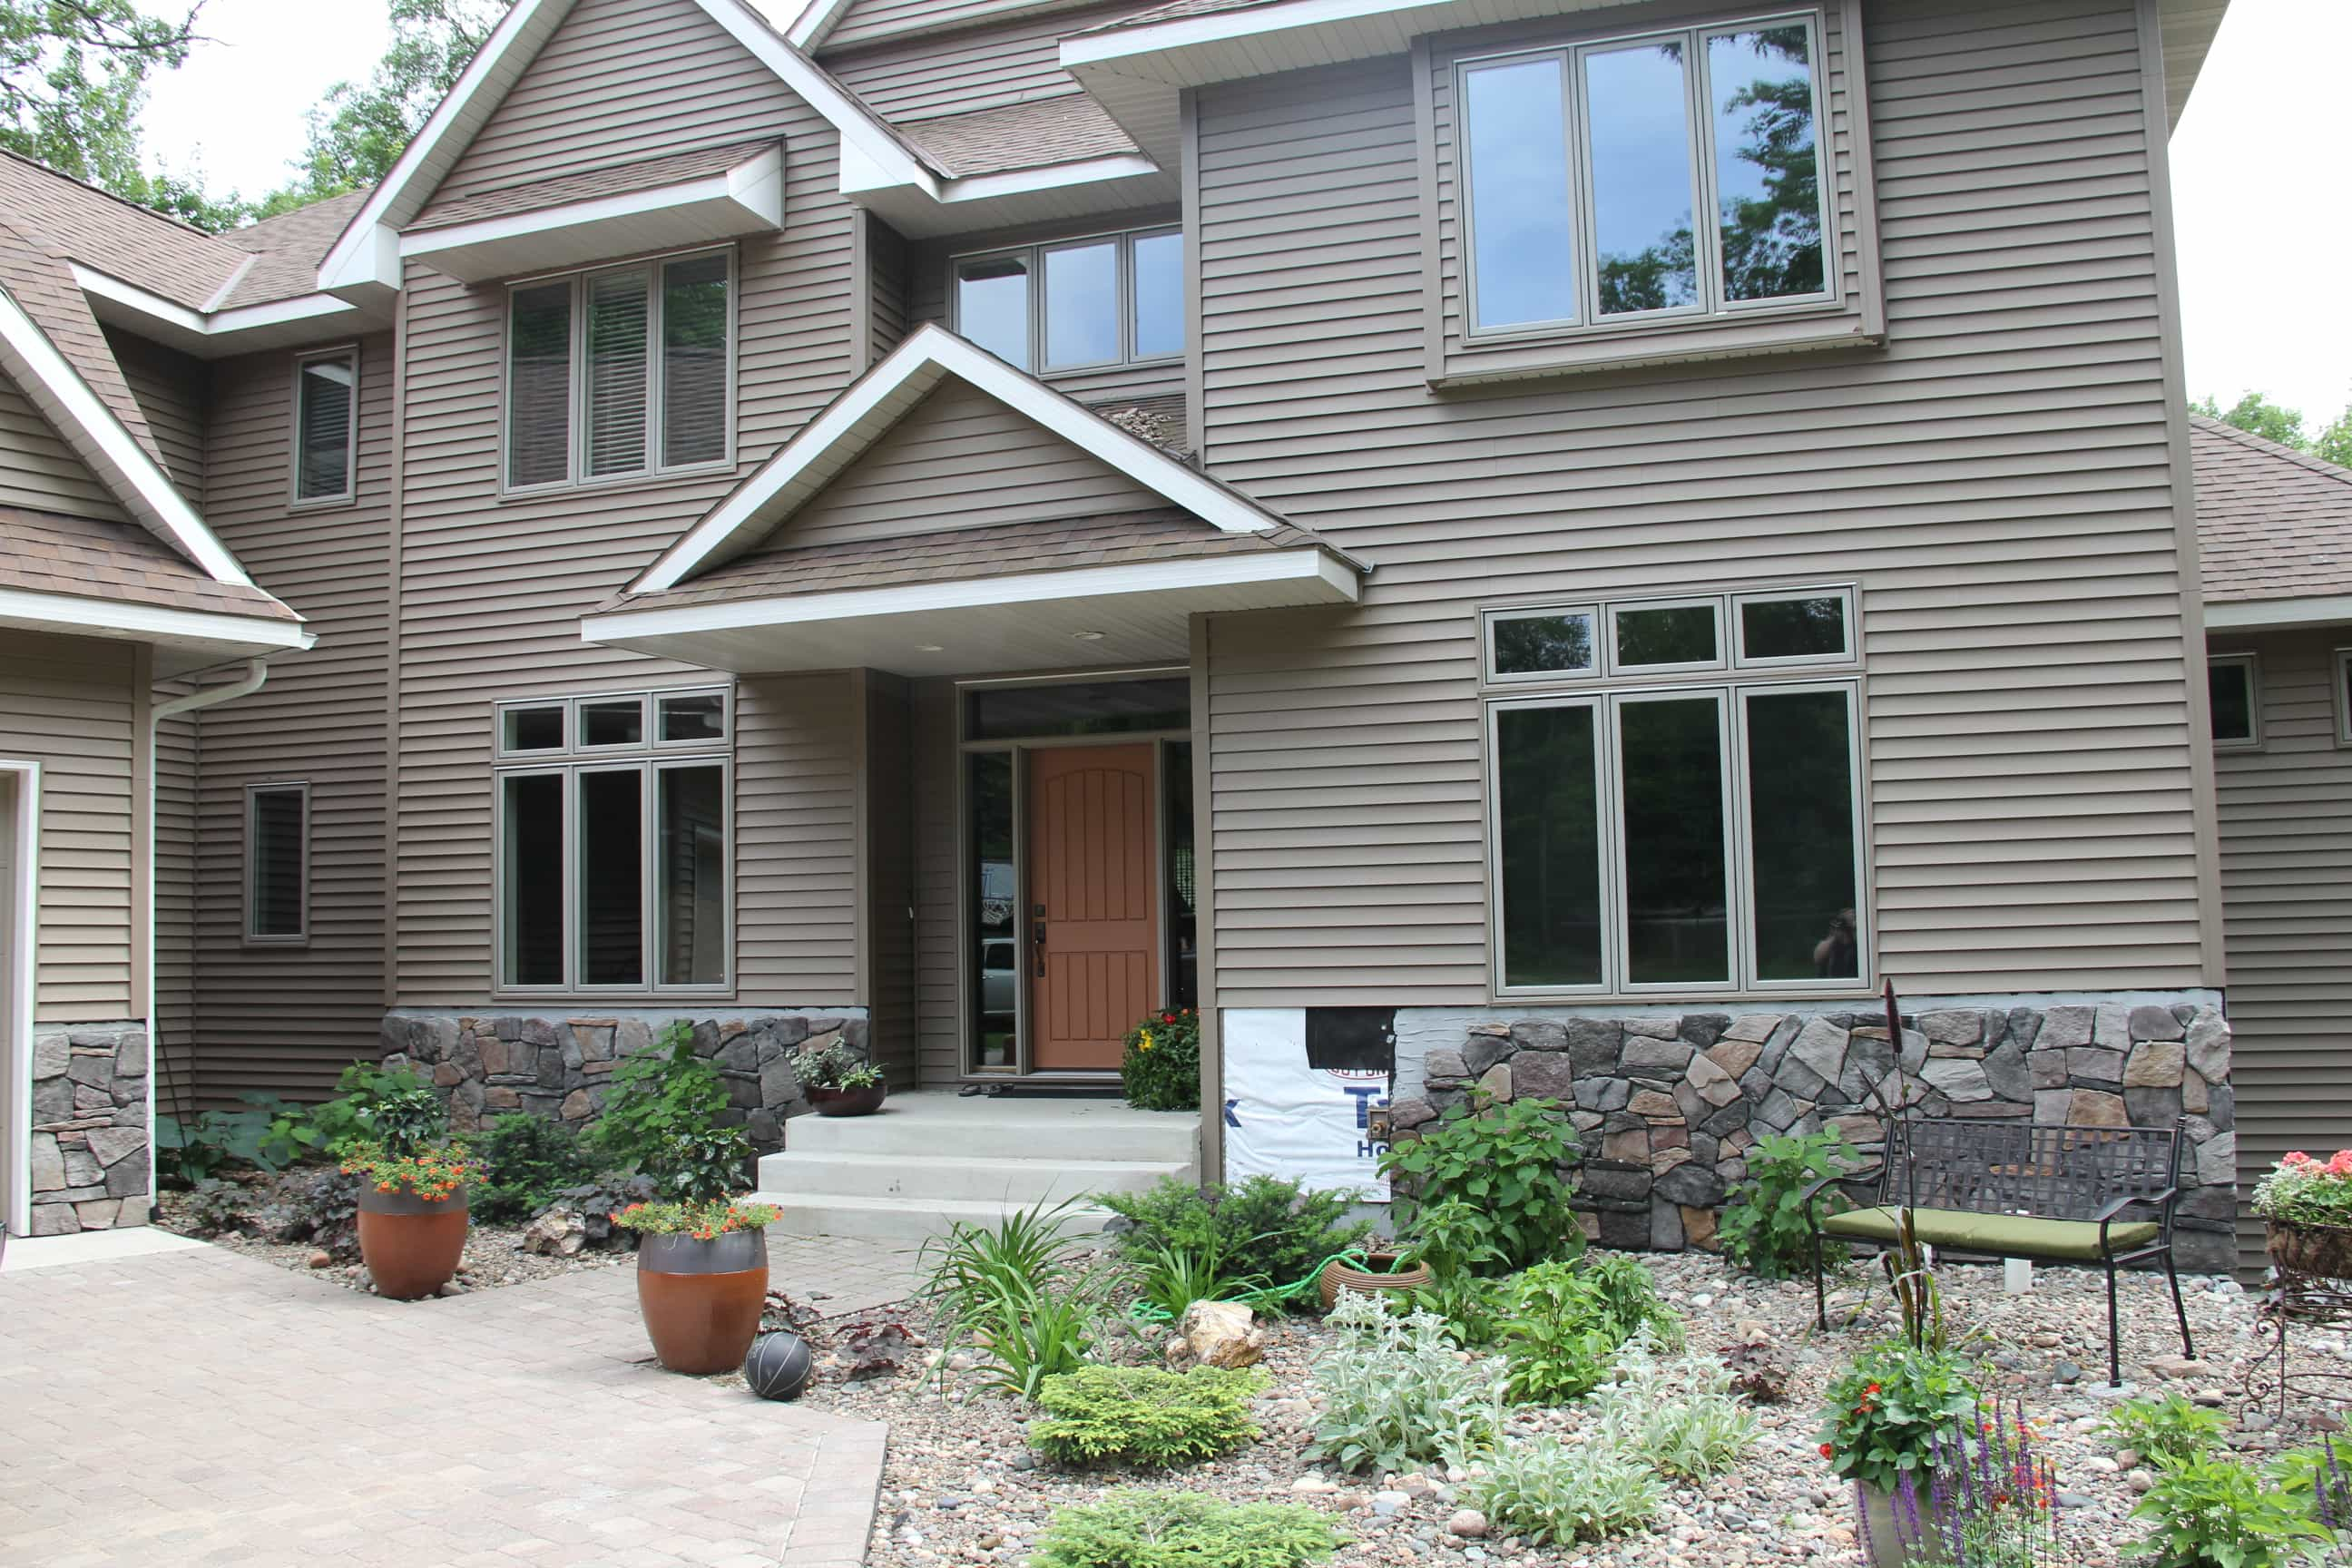 DIY Stone Veneer on House Exterior